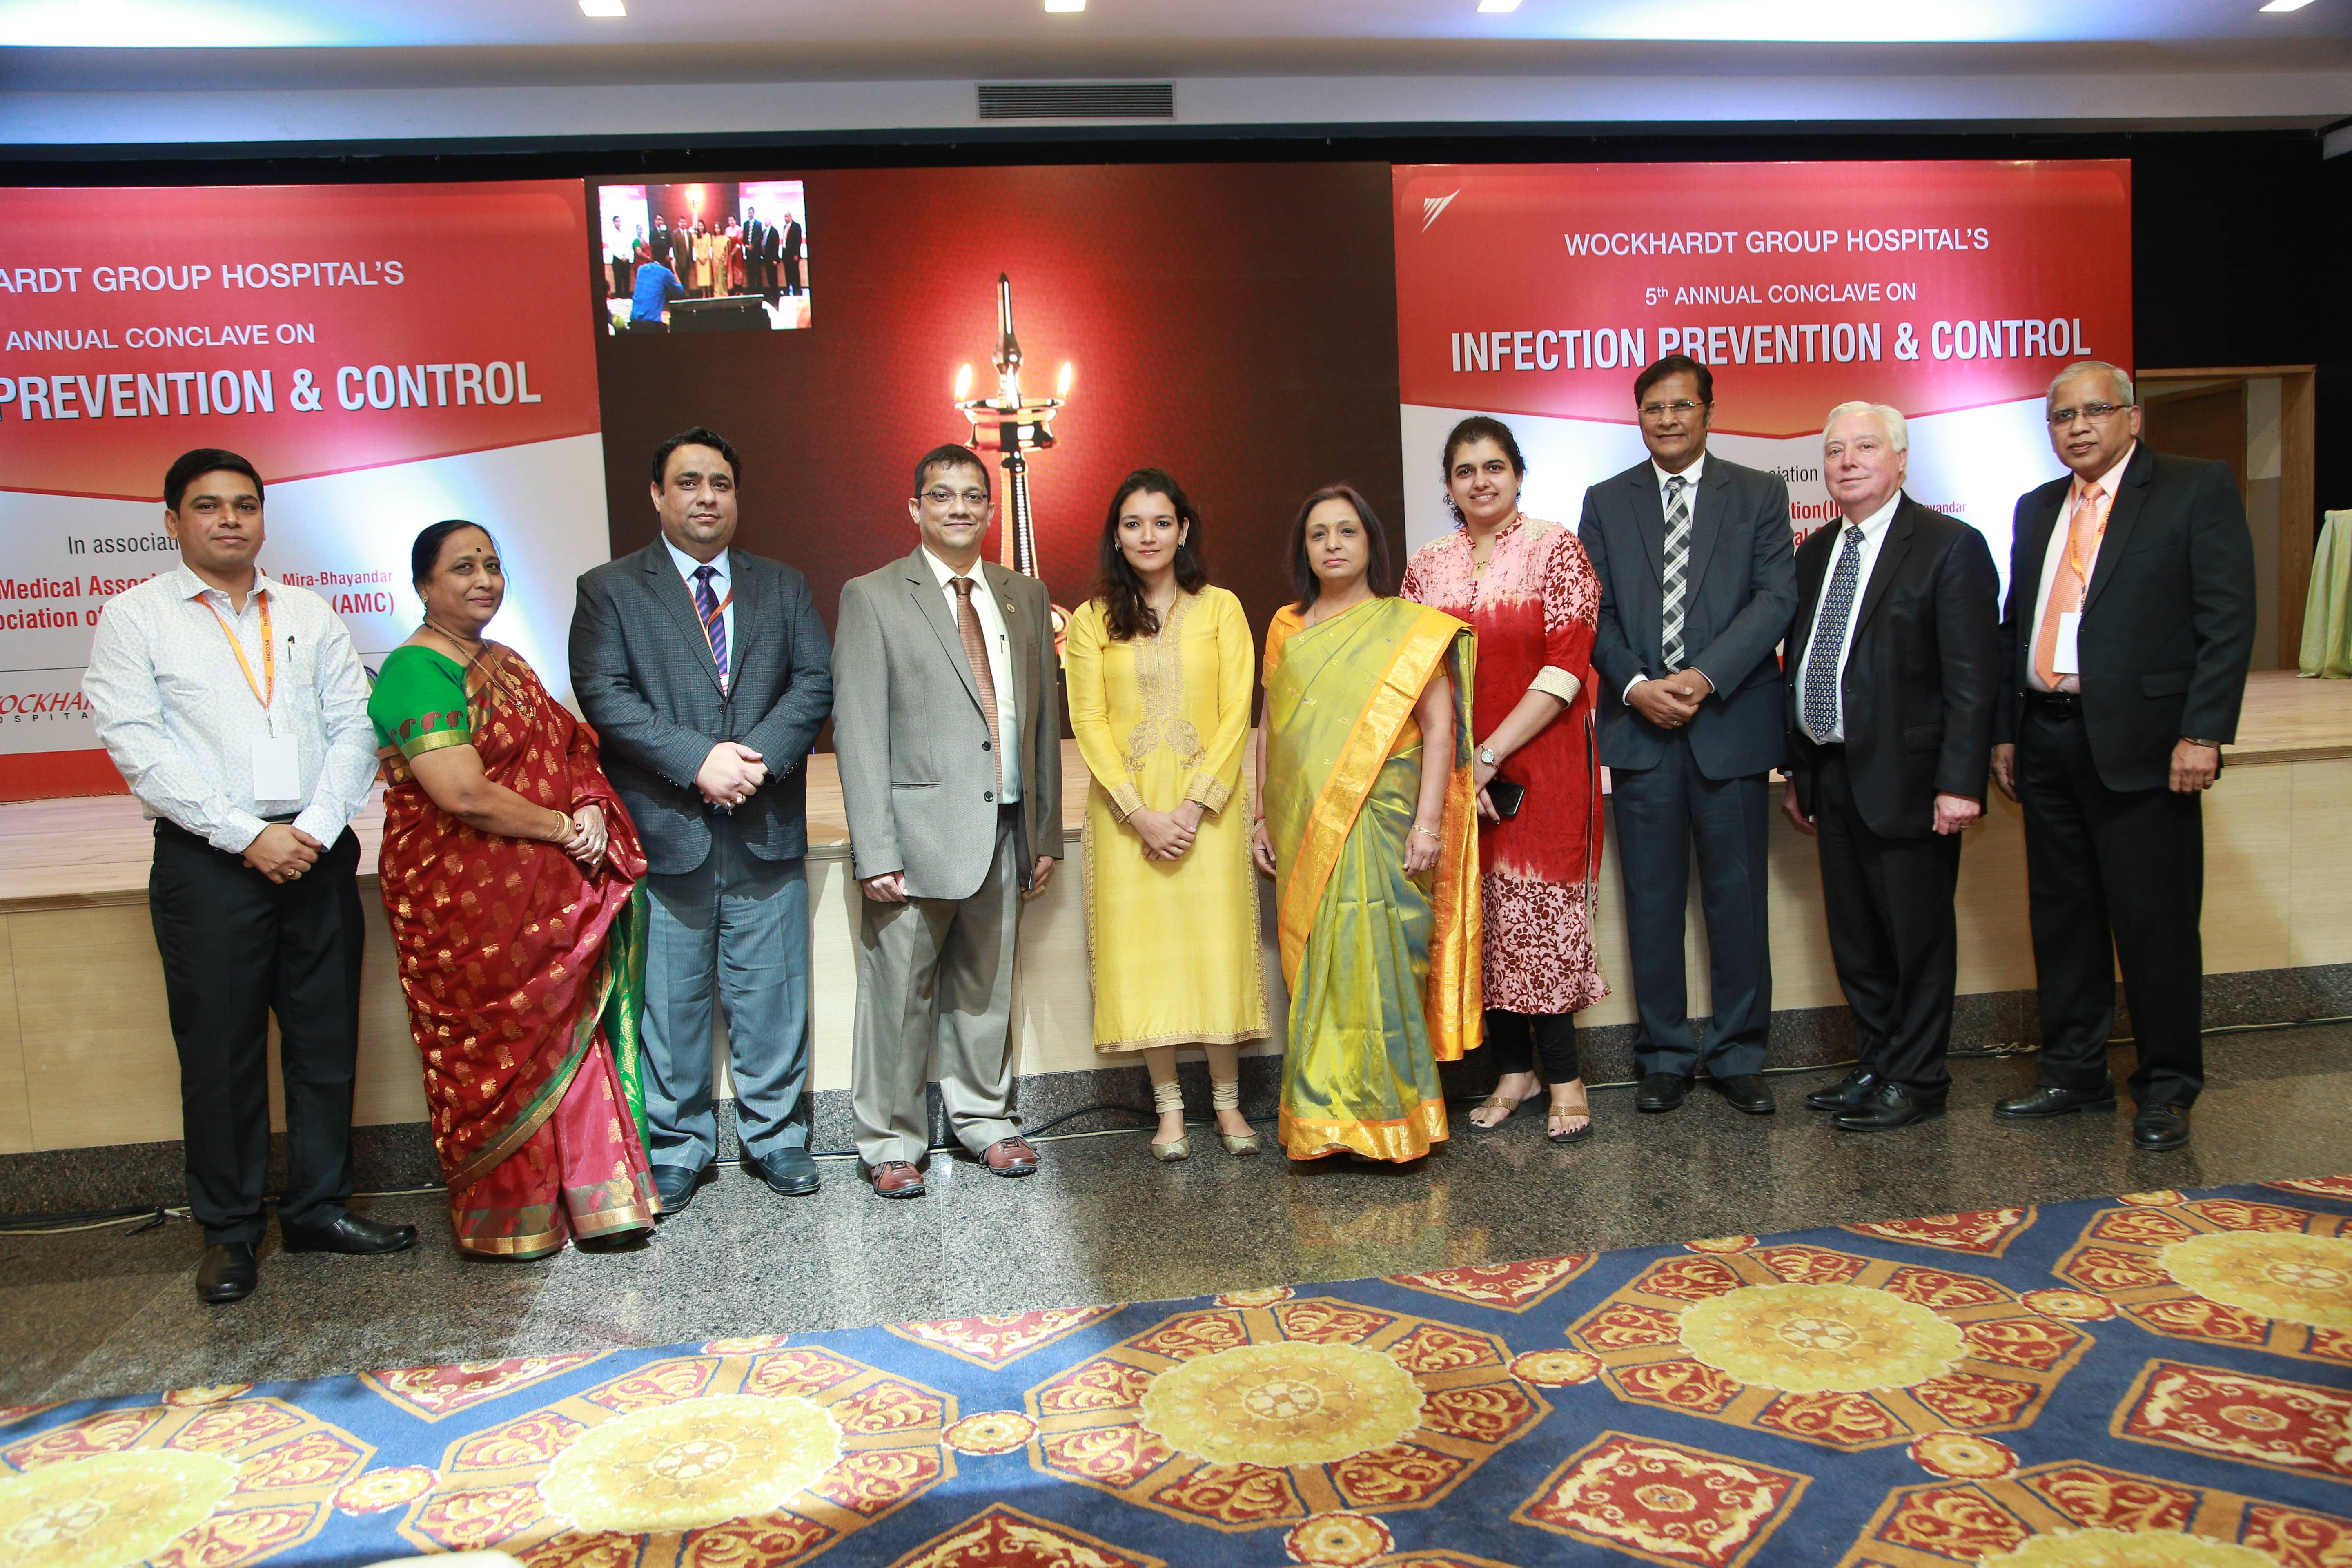 Wockhardt Hospitals' MD, Ms. Zahabiya Khorakiwala; Group Clinical Director, Dr. Clive Fernandes, President, Mr. Anupam Verma & CEO, Dr. Ravi Hirwani during inauguration of hospital's 5th Infection Prevention and Control Conclave in presence of Dr. Girdhar Gyani, Director General, AHPI and Thomas W. Kozlowski, JCI